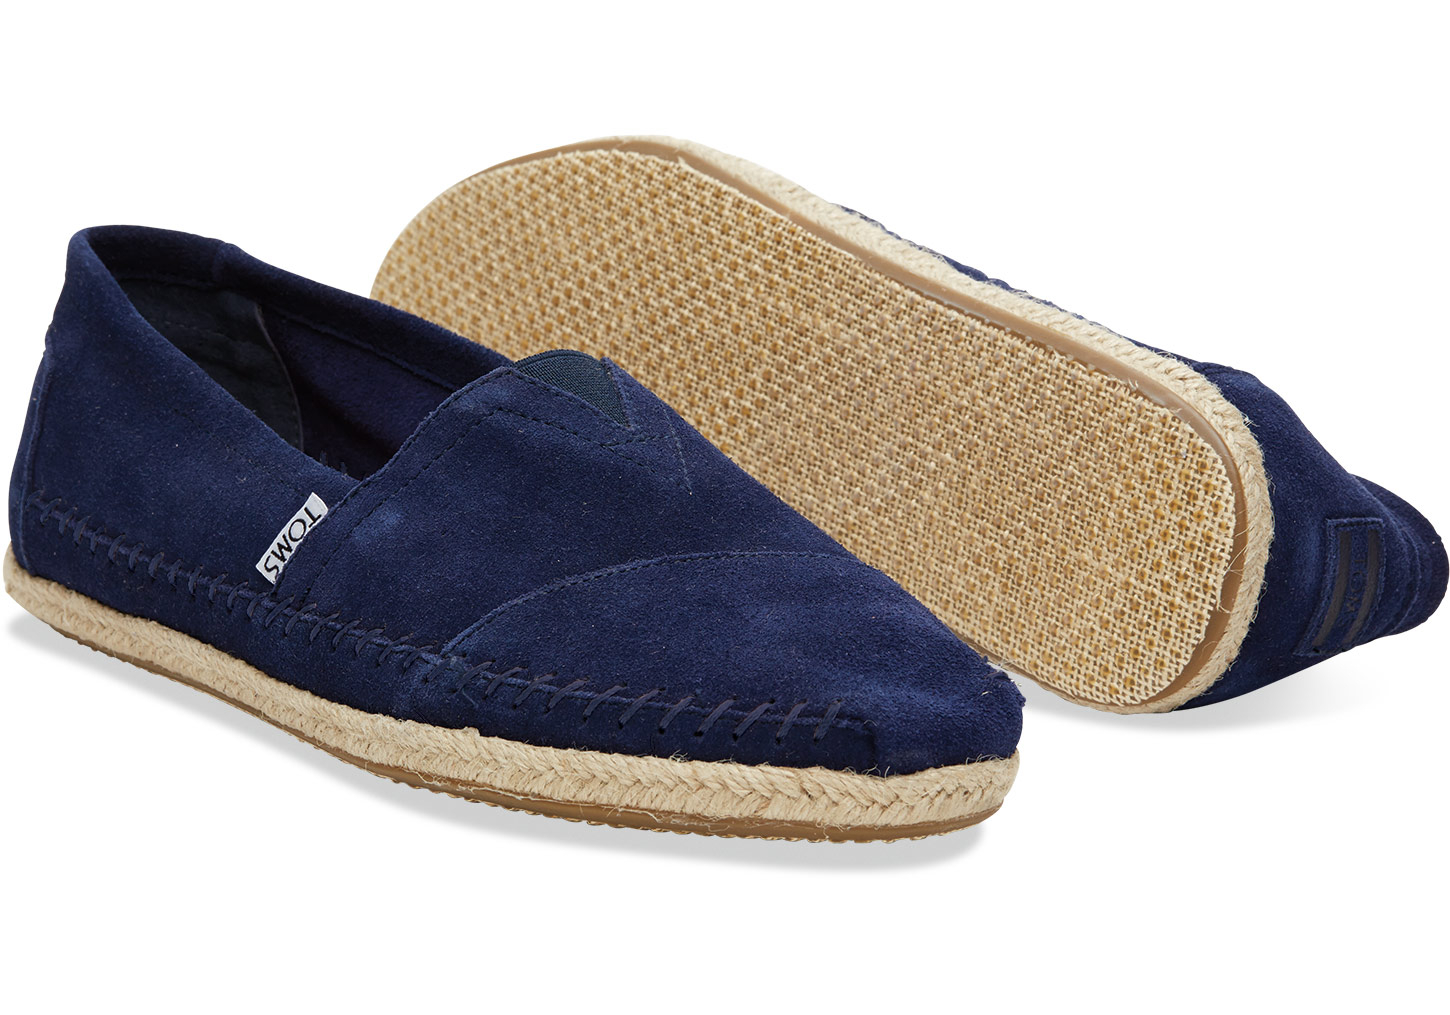 e0b2a839ff4 Lyst - TOMS Navy Suede Rope Sole Men s Classics in Blue for Men